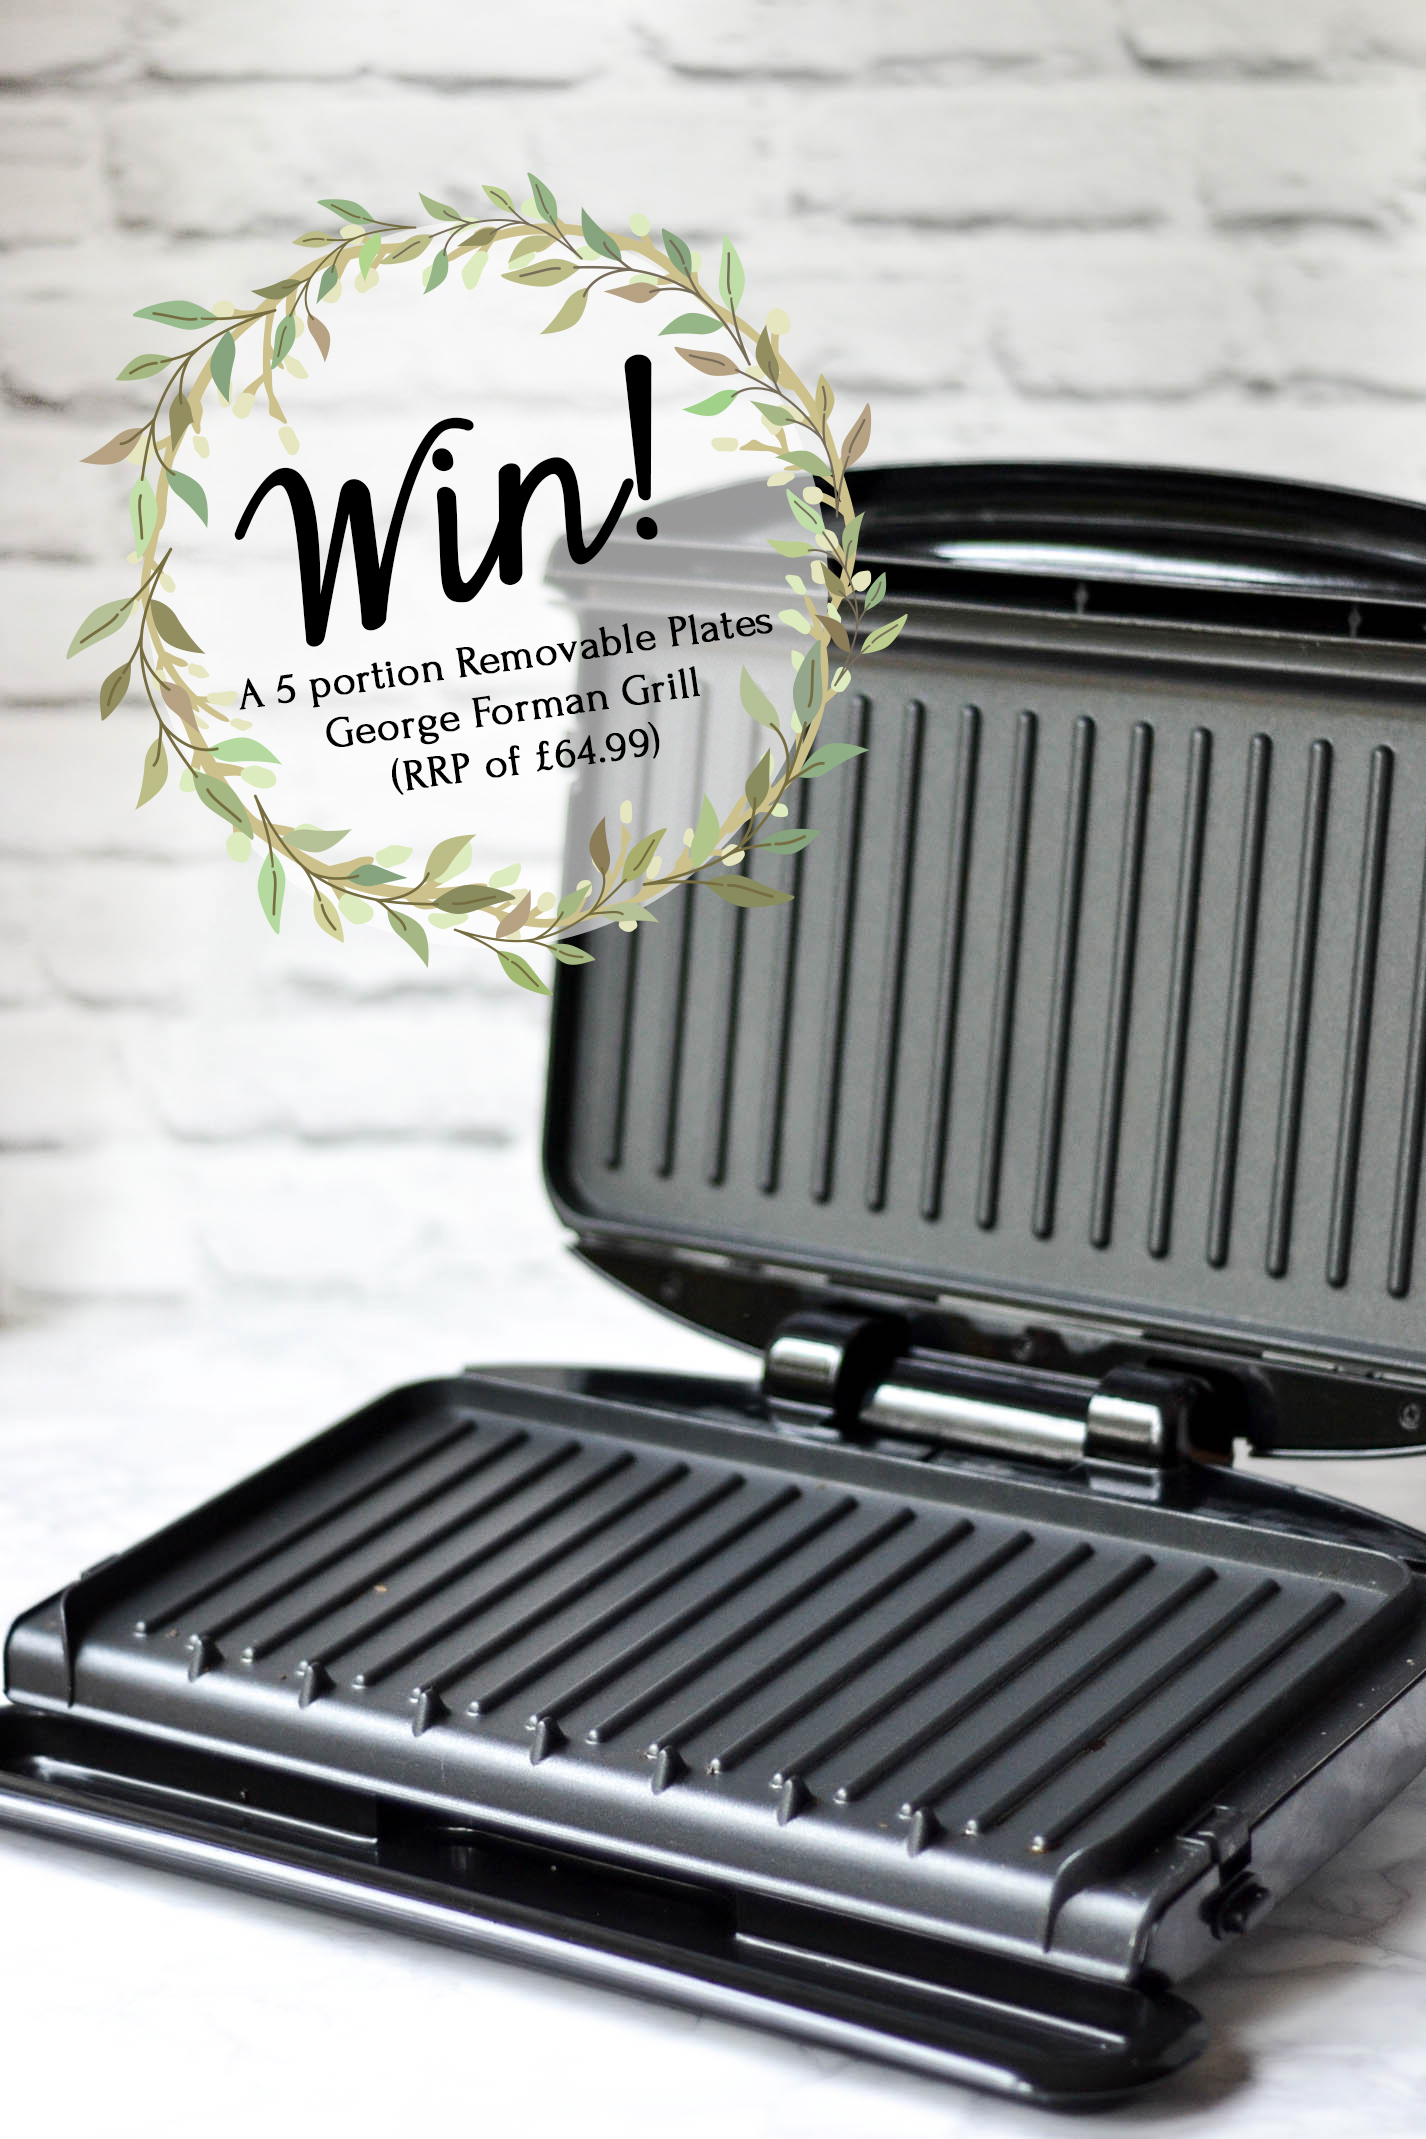 George Forman Grill Review + Giveaway